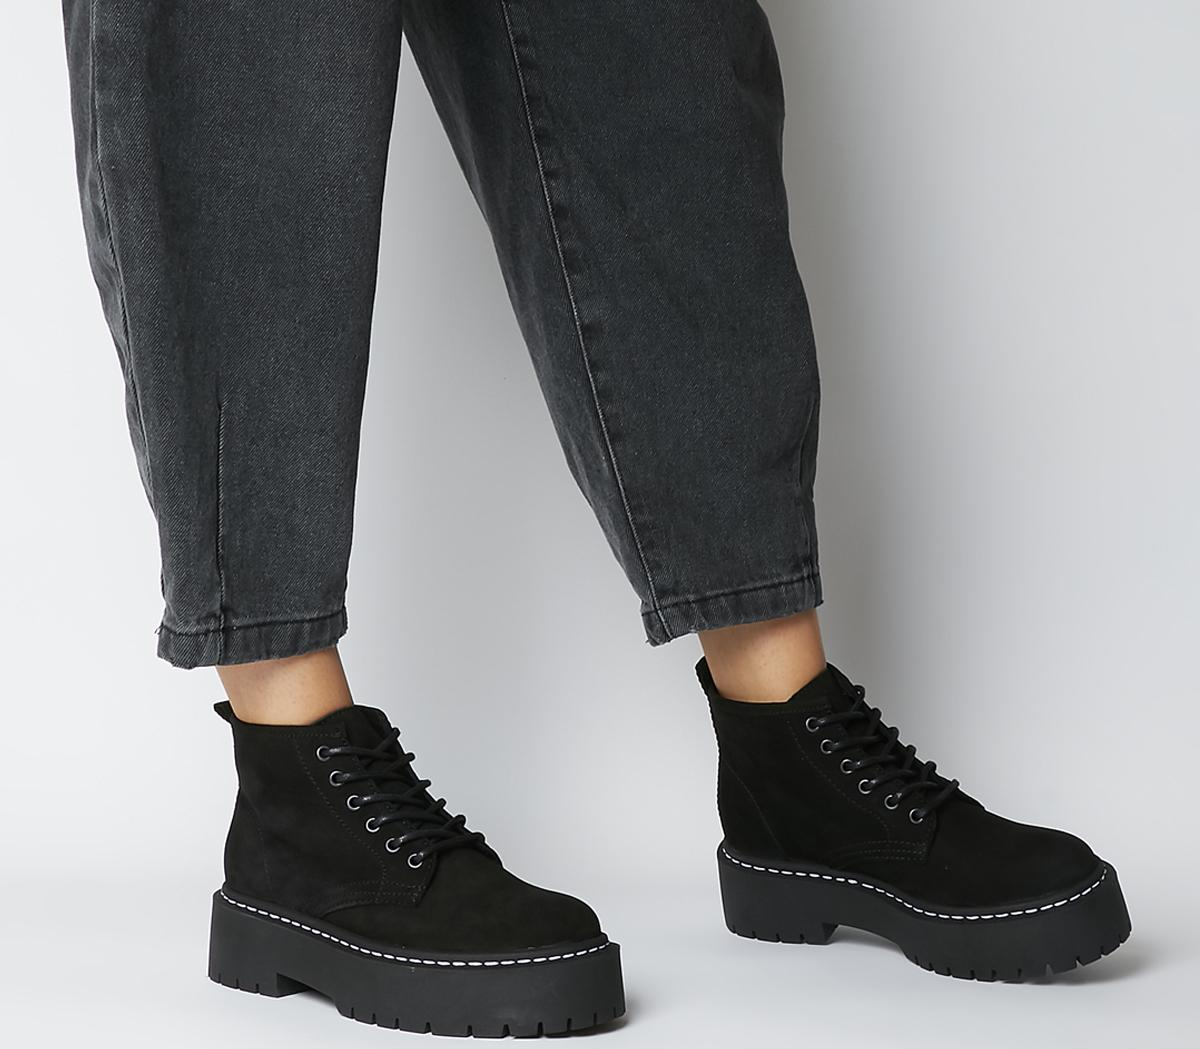 Absorb Chunky Lace Up Boots